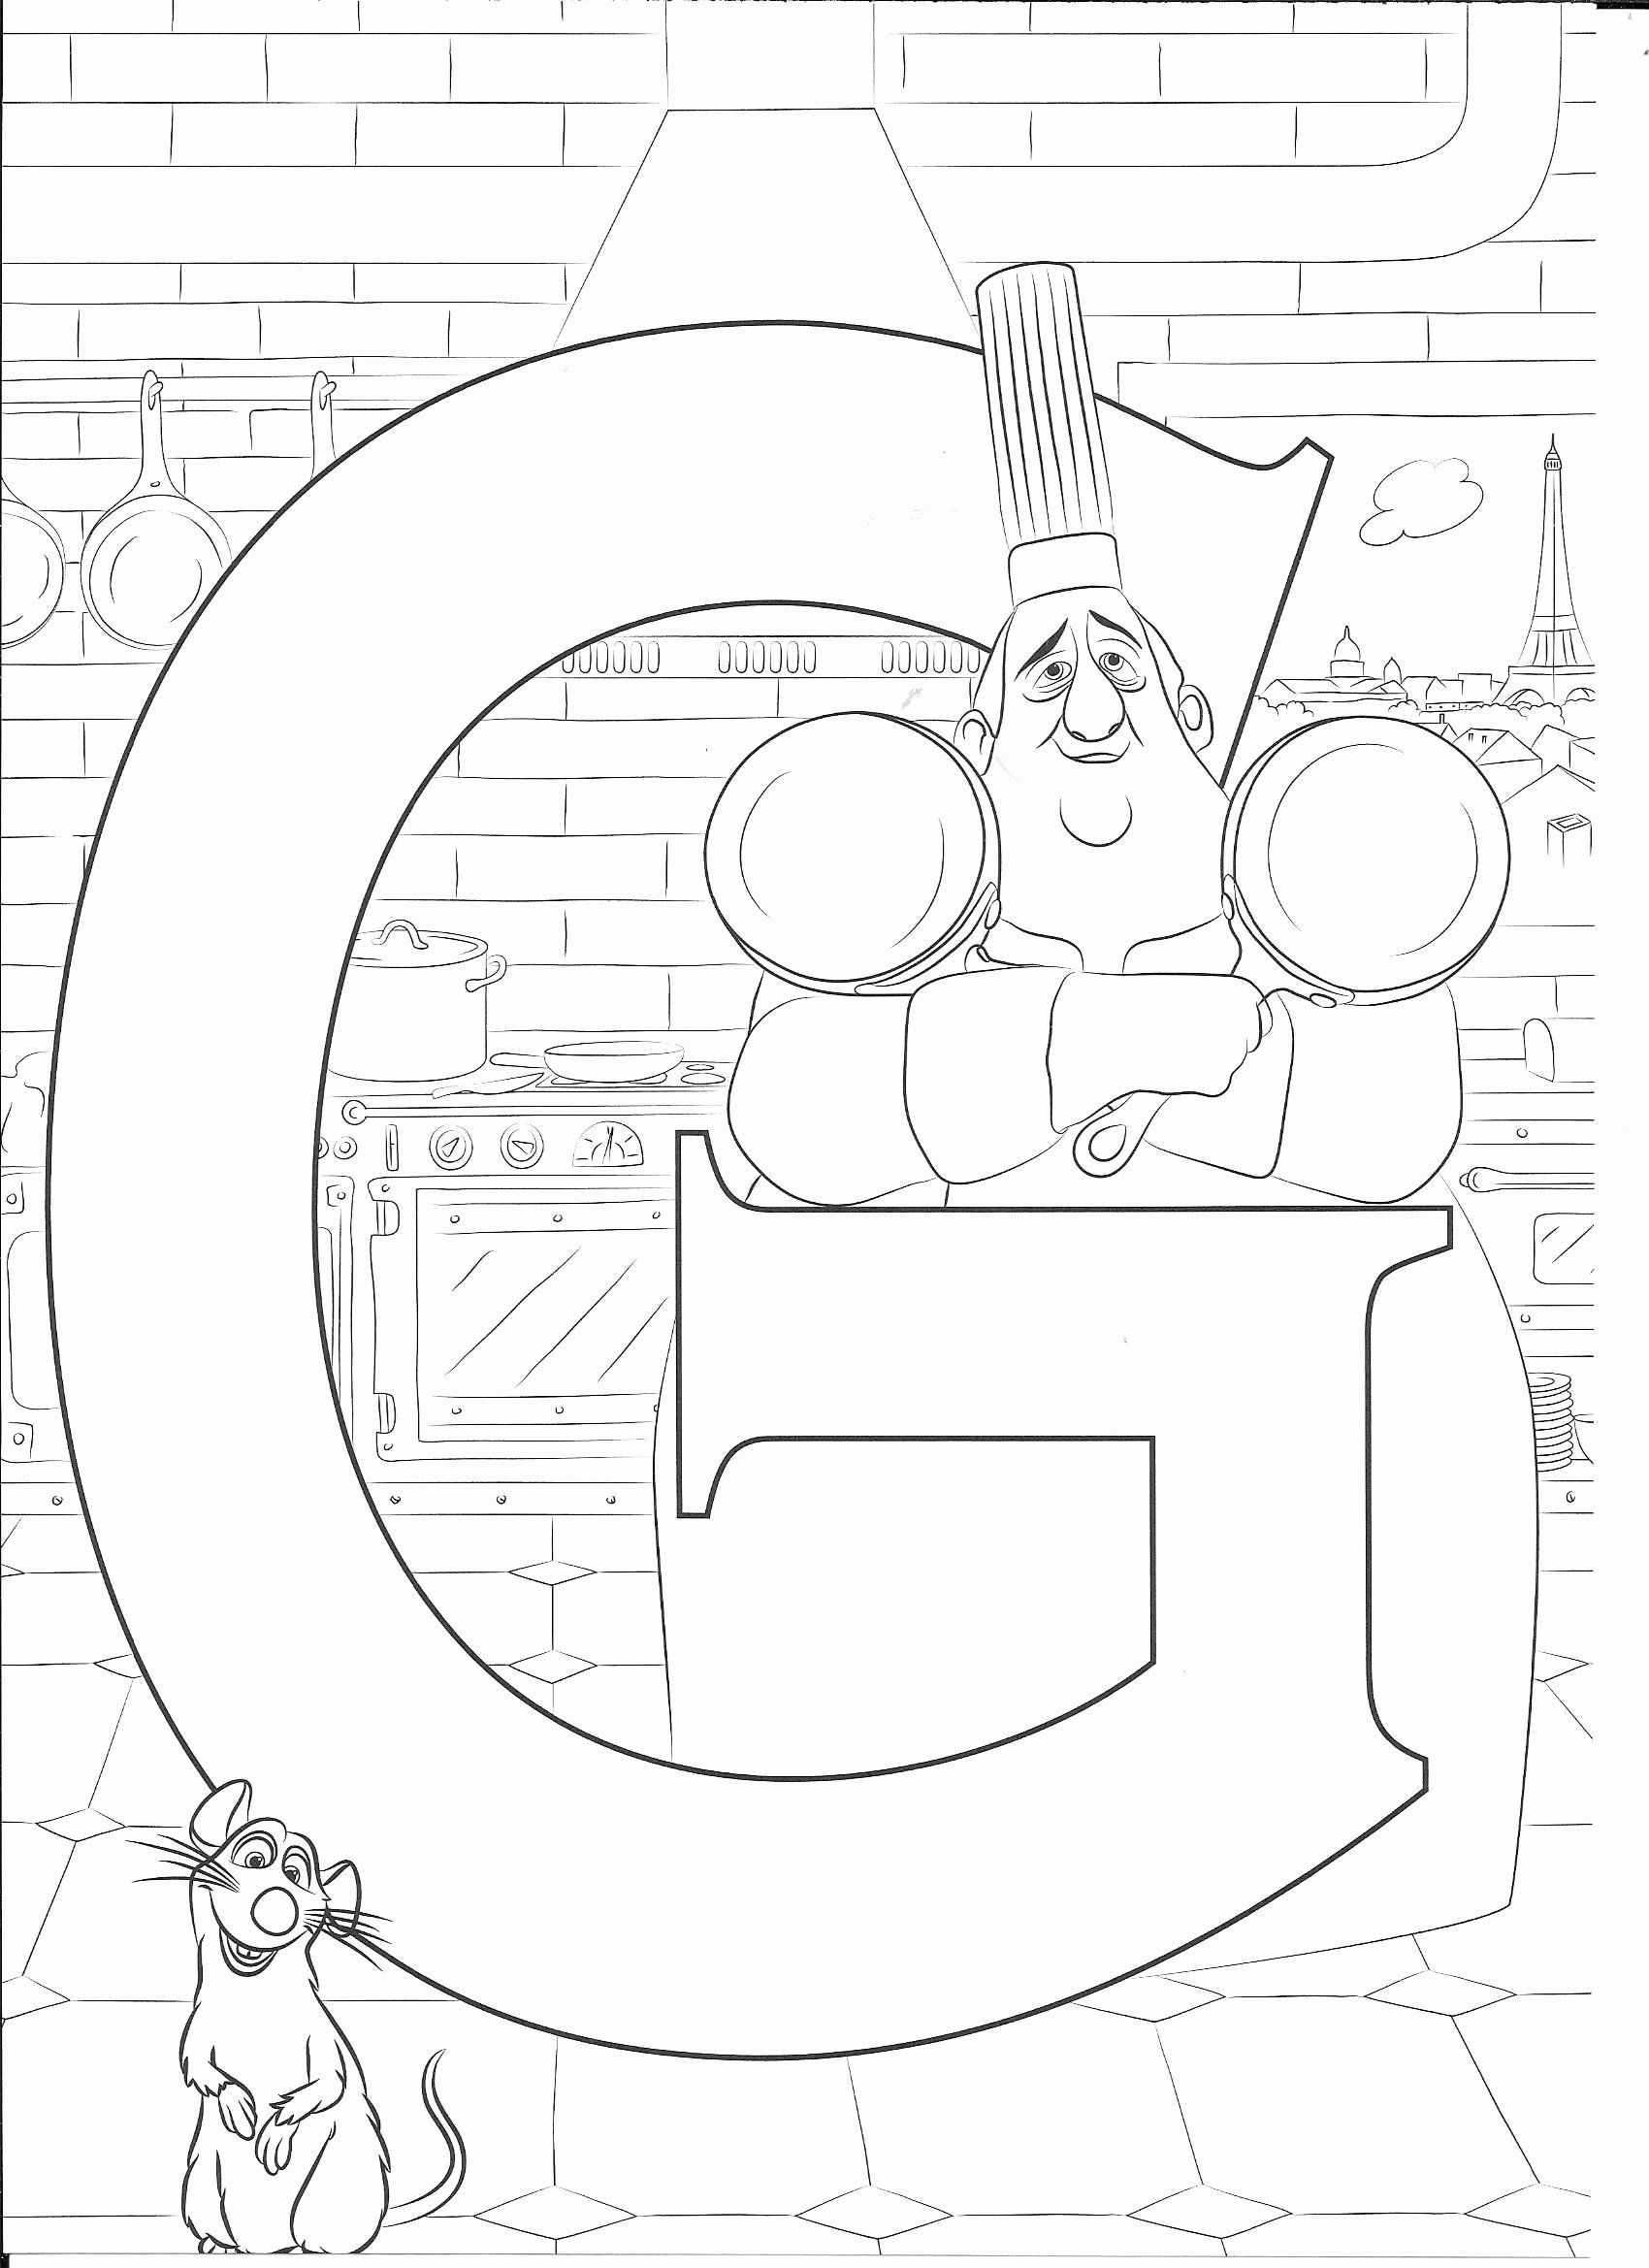 Alphabet U Coloring Pages Best Of G For Gusto Disney